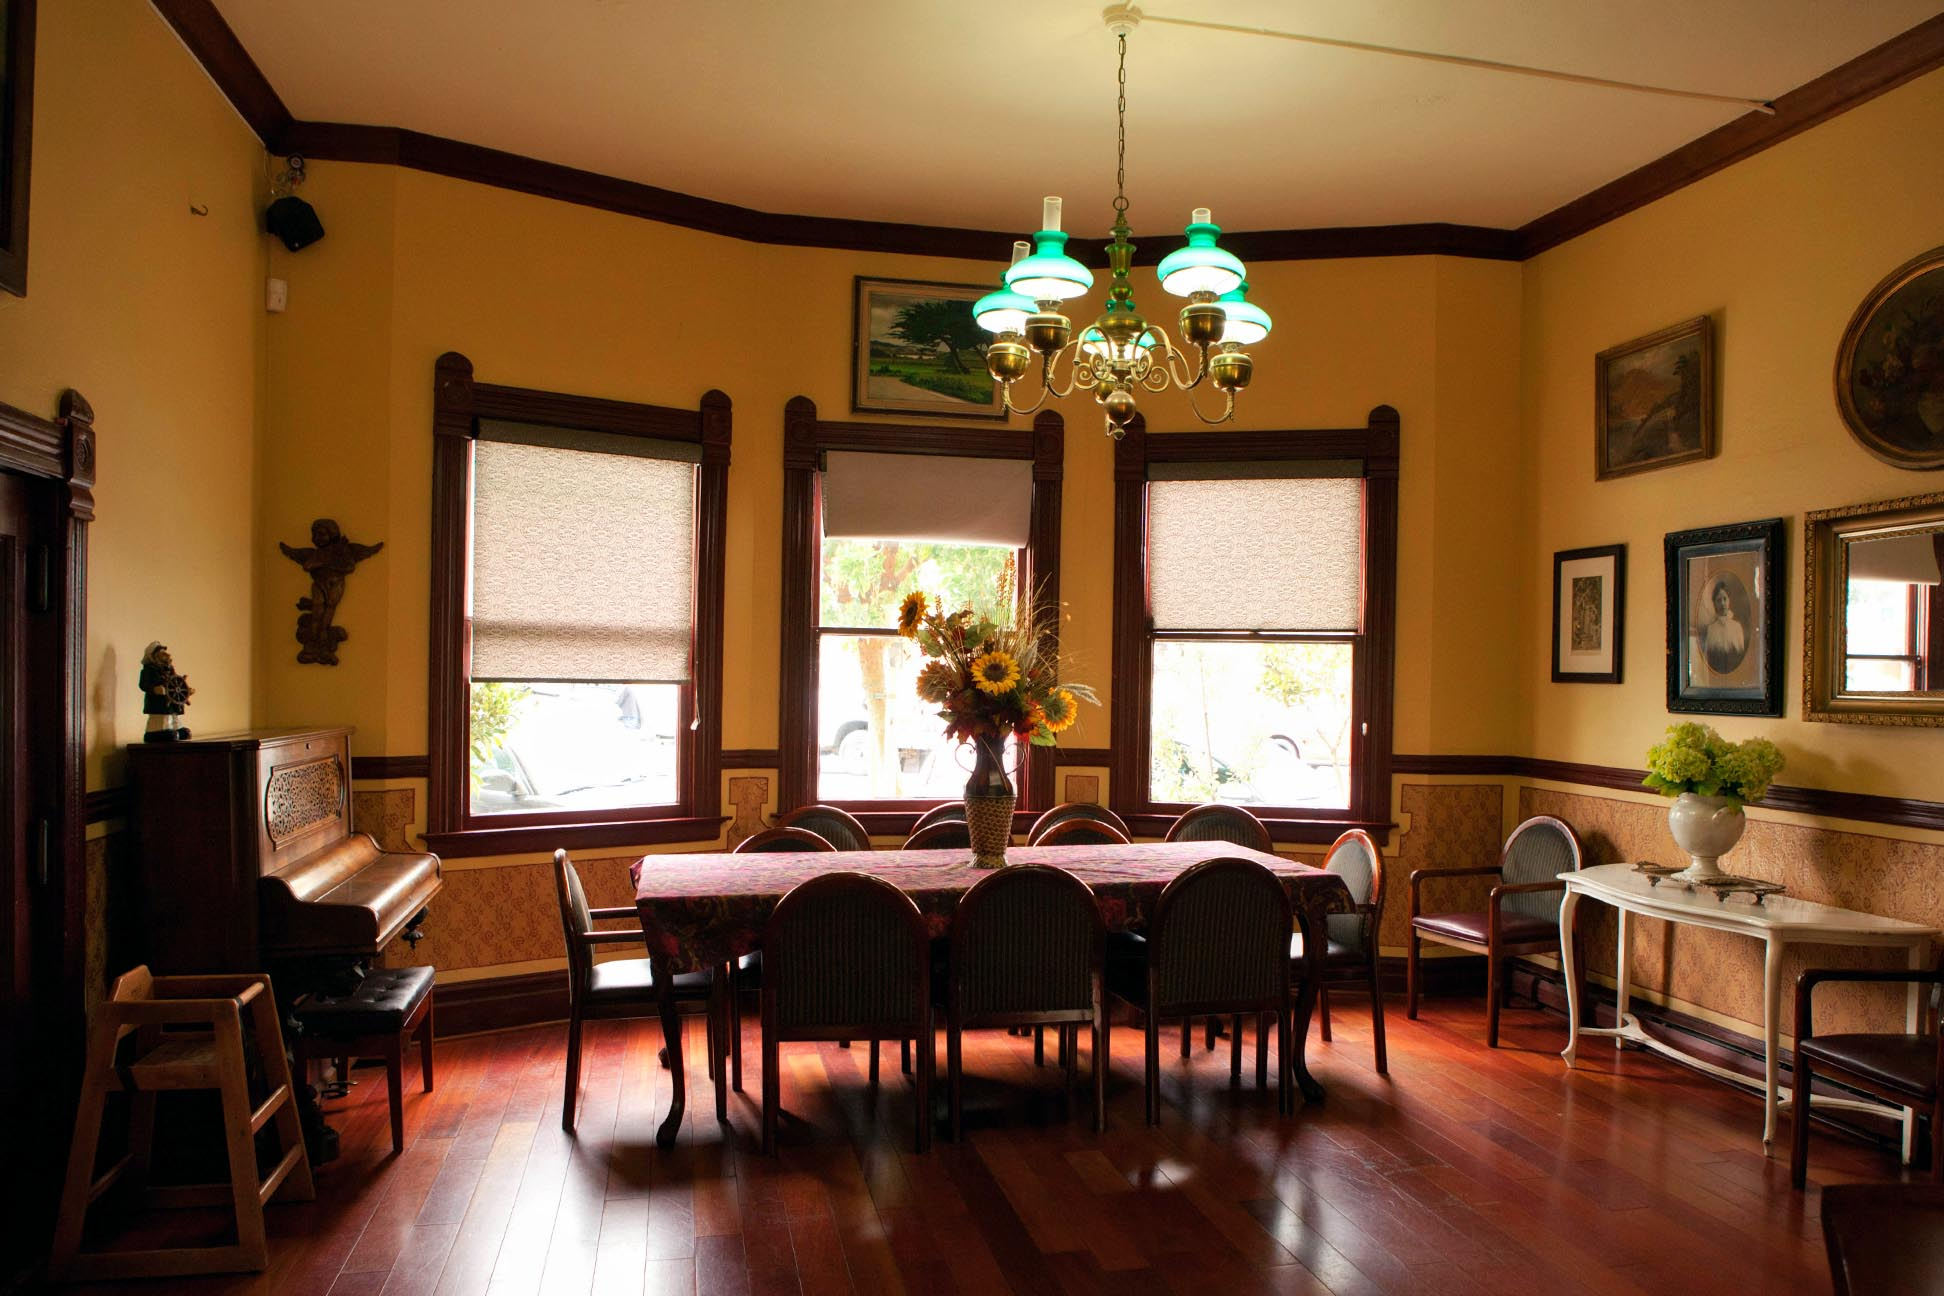 dinning room photo for hotel website